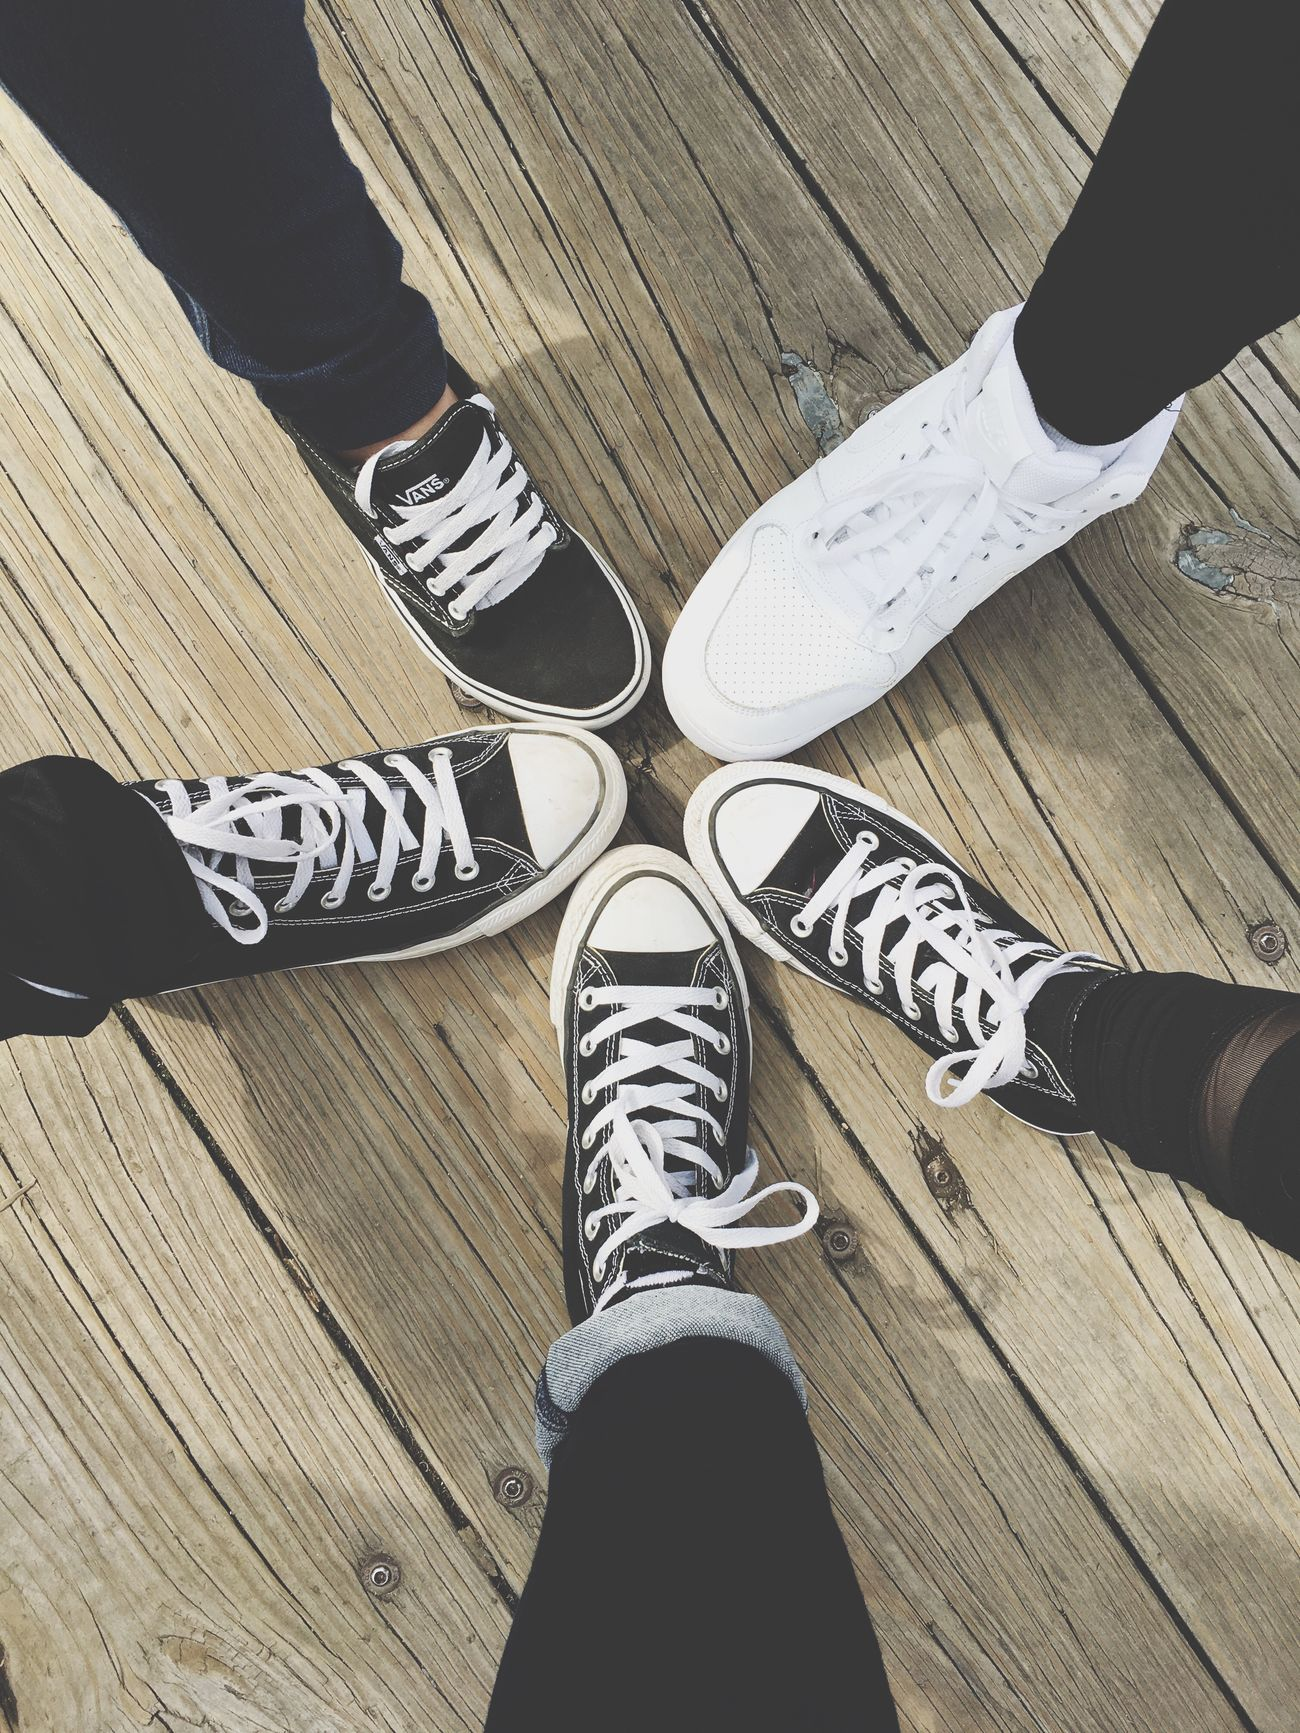 MACKINAW Shoe Low Section High Angle View Human Leg Hardwood Floor Standing Real People Men Human Body Part Indoors  Directly Above Wood - Material Lifestyles Two People Togetherness Day Close-up Friendship Adult People